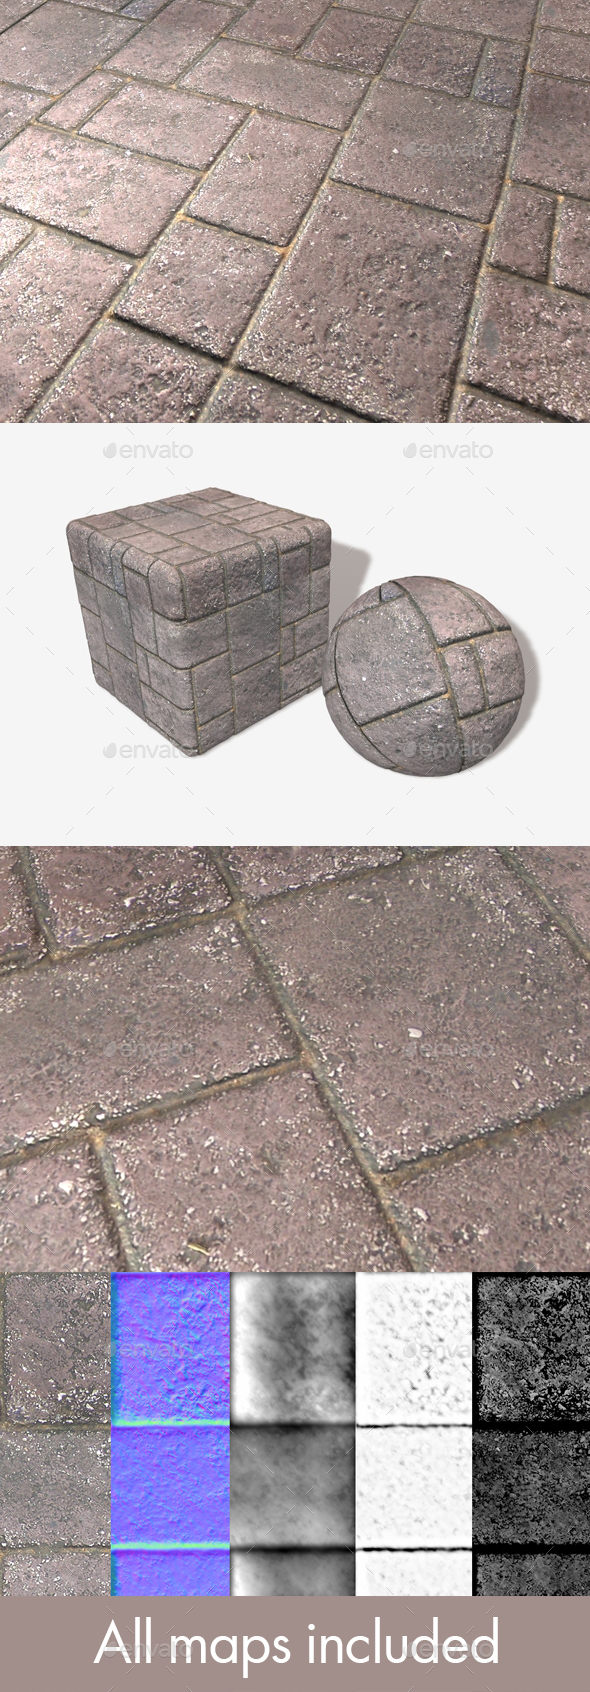 Ground Brick Pattern Seamless Texture - 3DOcean Item for Sale